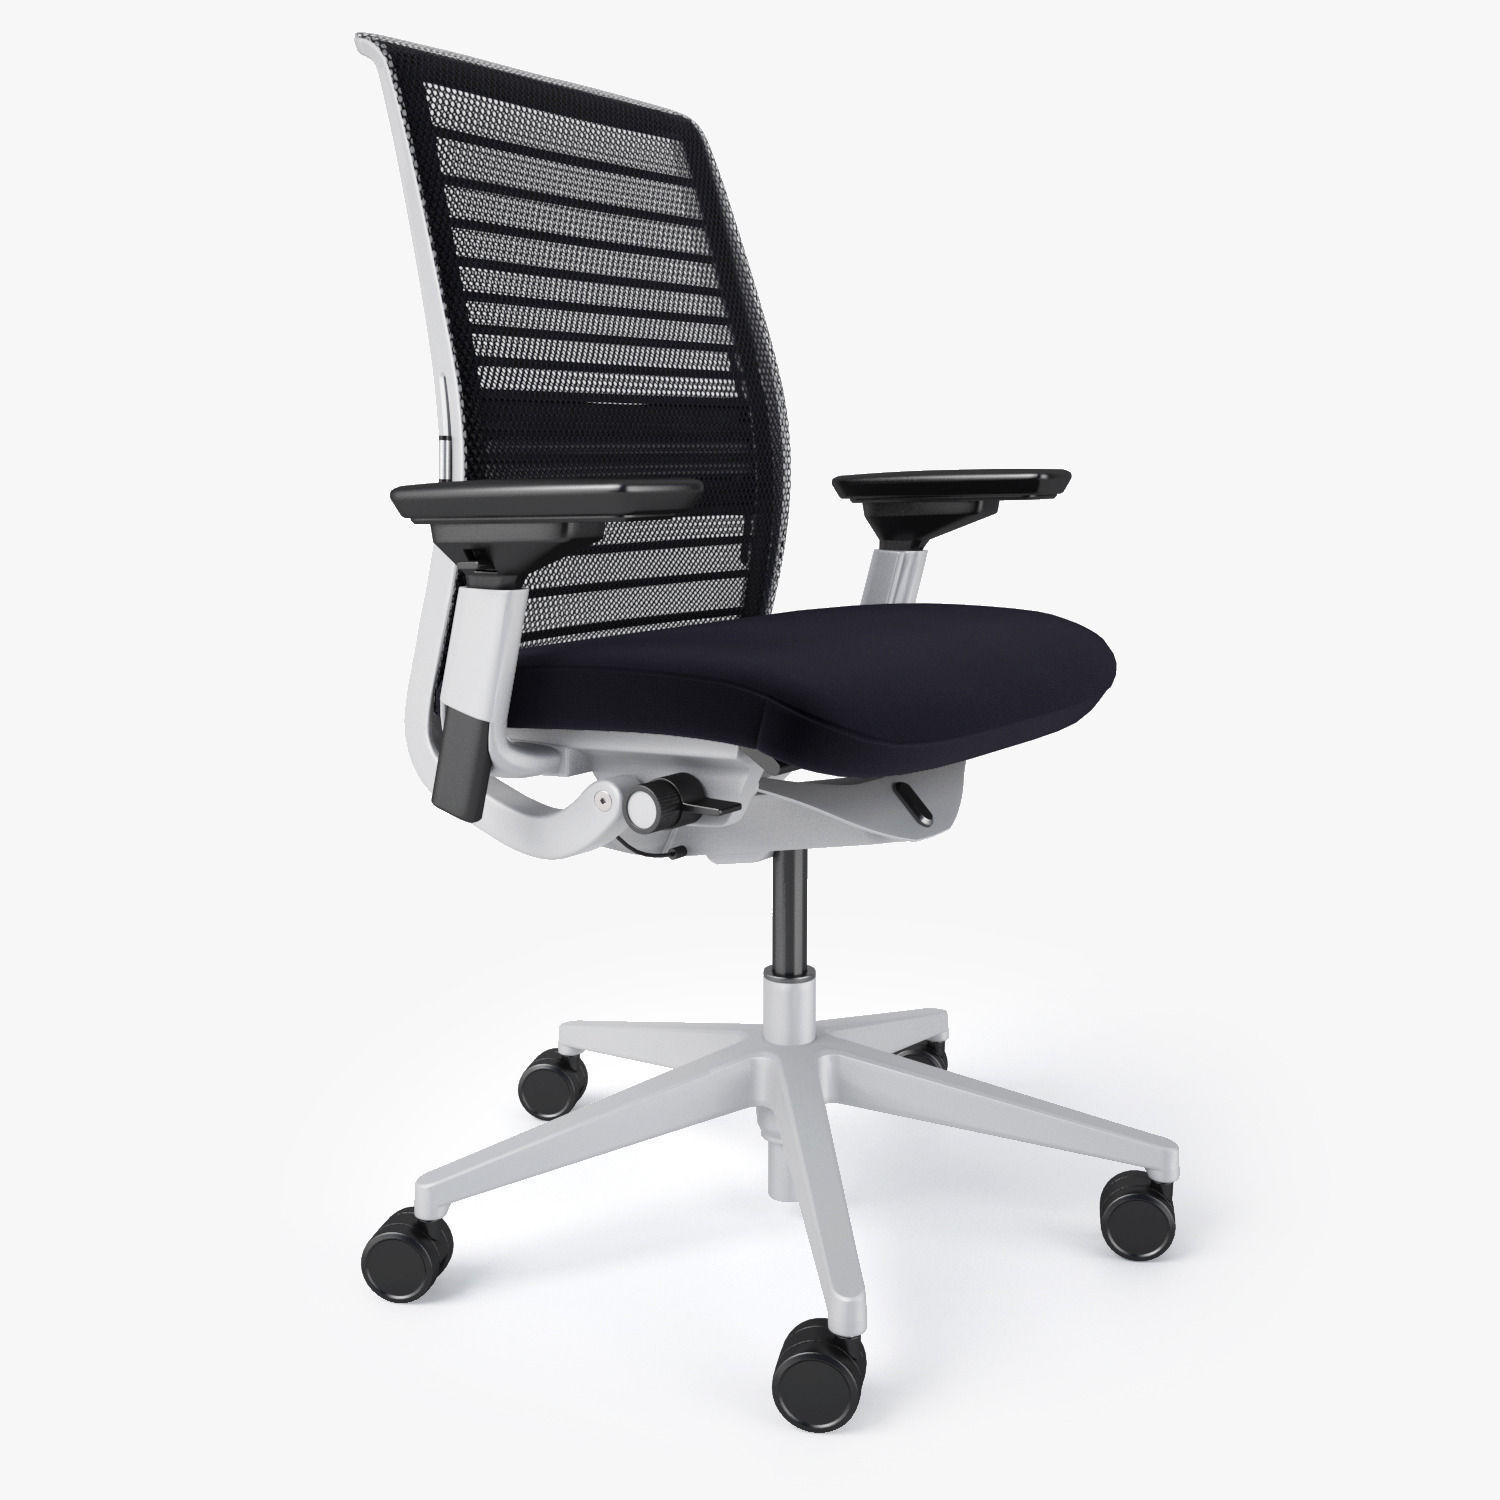 ... Steelcase Think Chair 3d Model Max Obj Fbx Mtl 2 ... Design